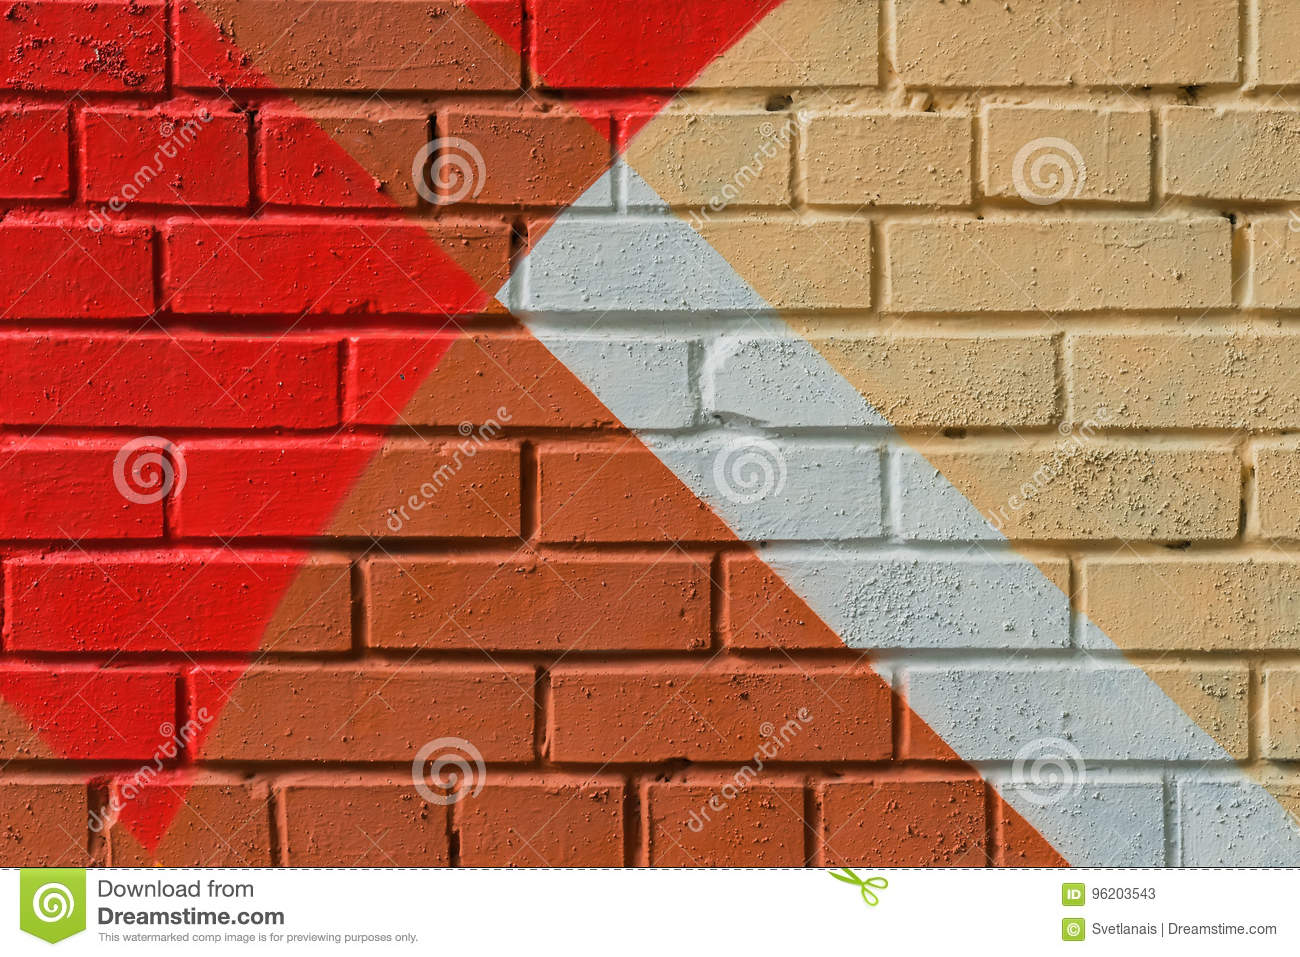 Abstract graffiti on the wall, very small detail. Street art close-up, stylish pattern. Can be useful for backgrounds